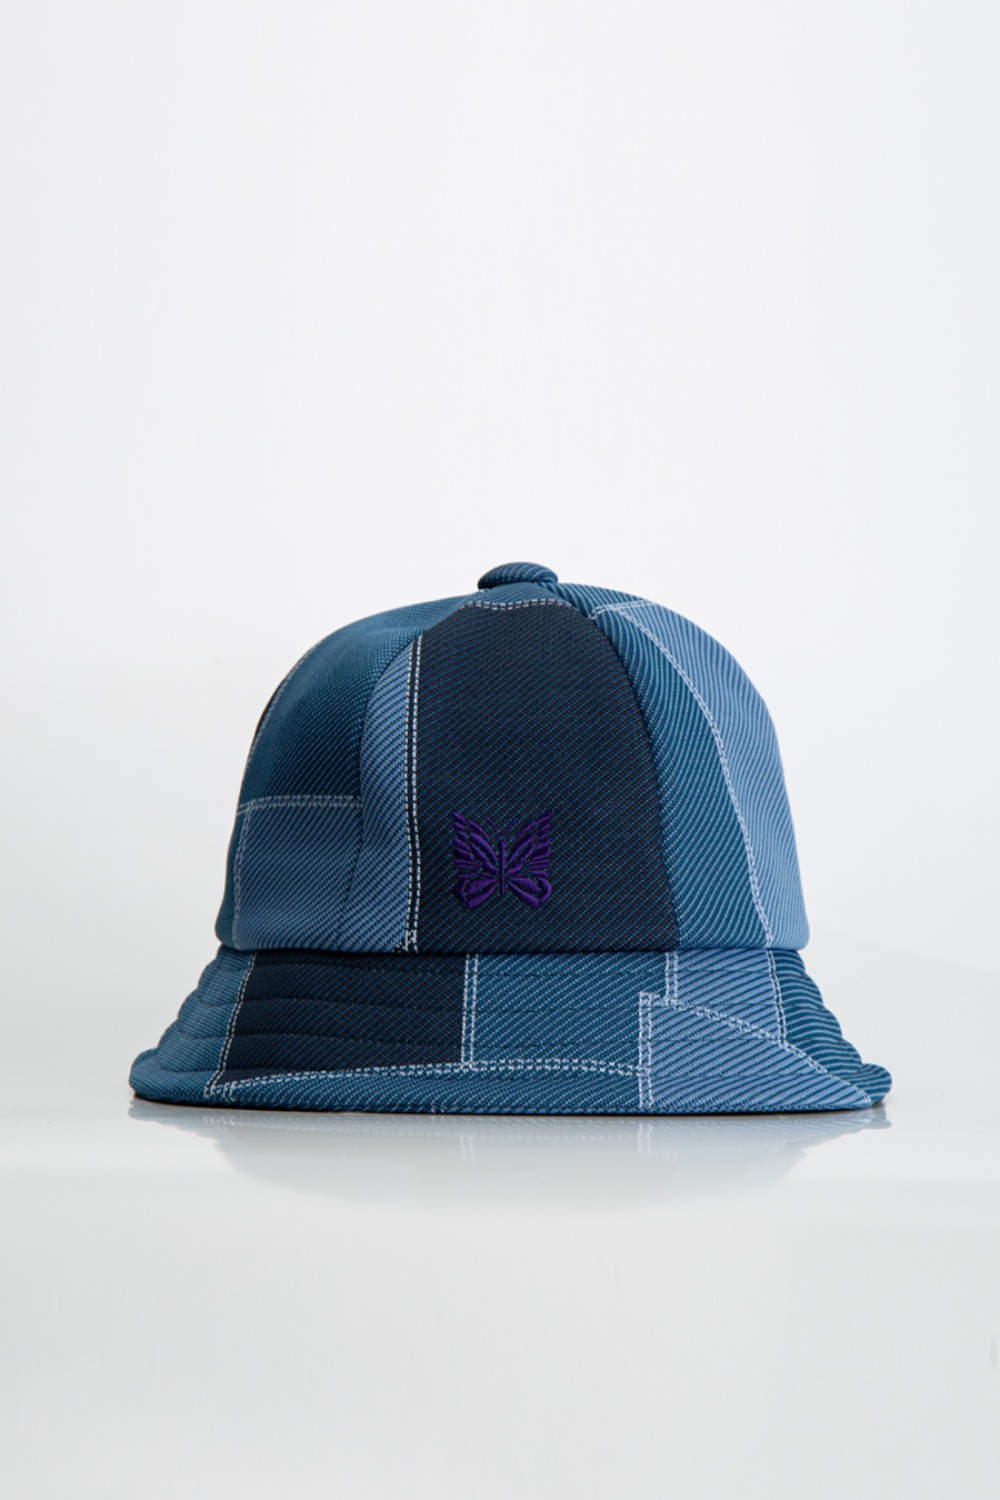 NEEDLES BERMUDA HAT - POLY JQ PATCHWORK